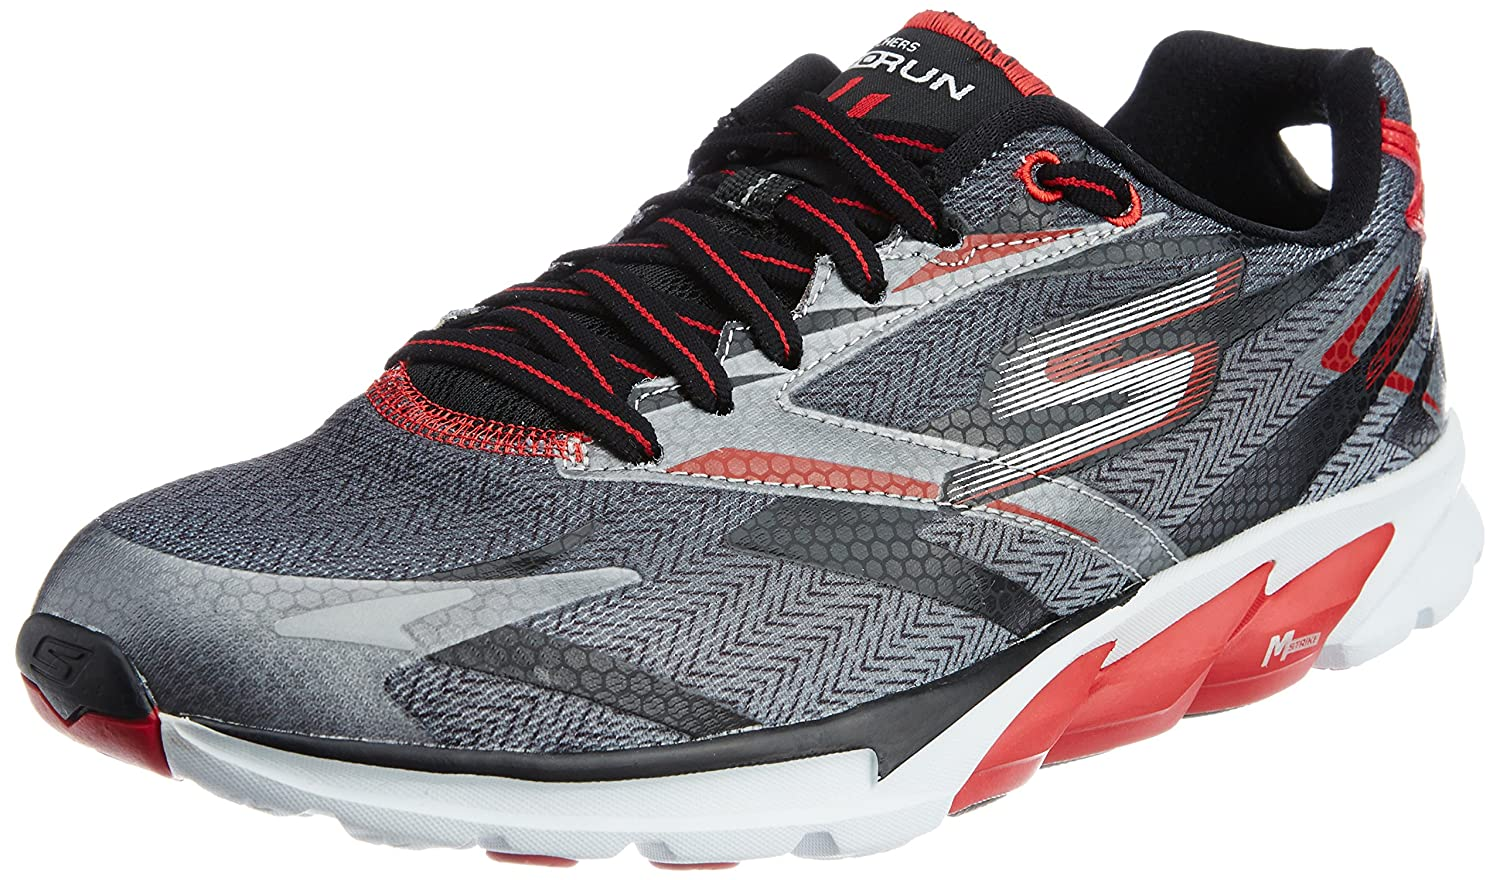 Go Run 4 Black and Red Running Shoes